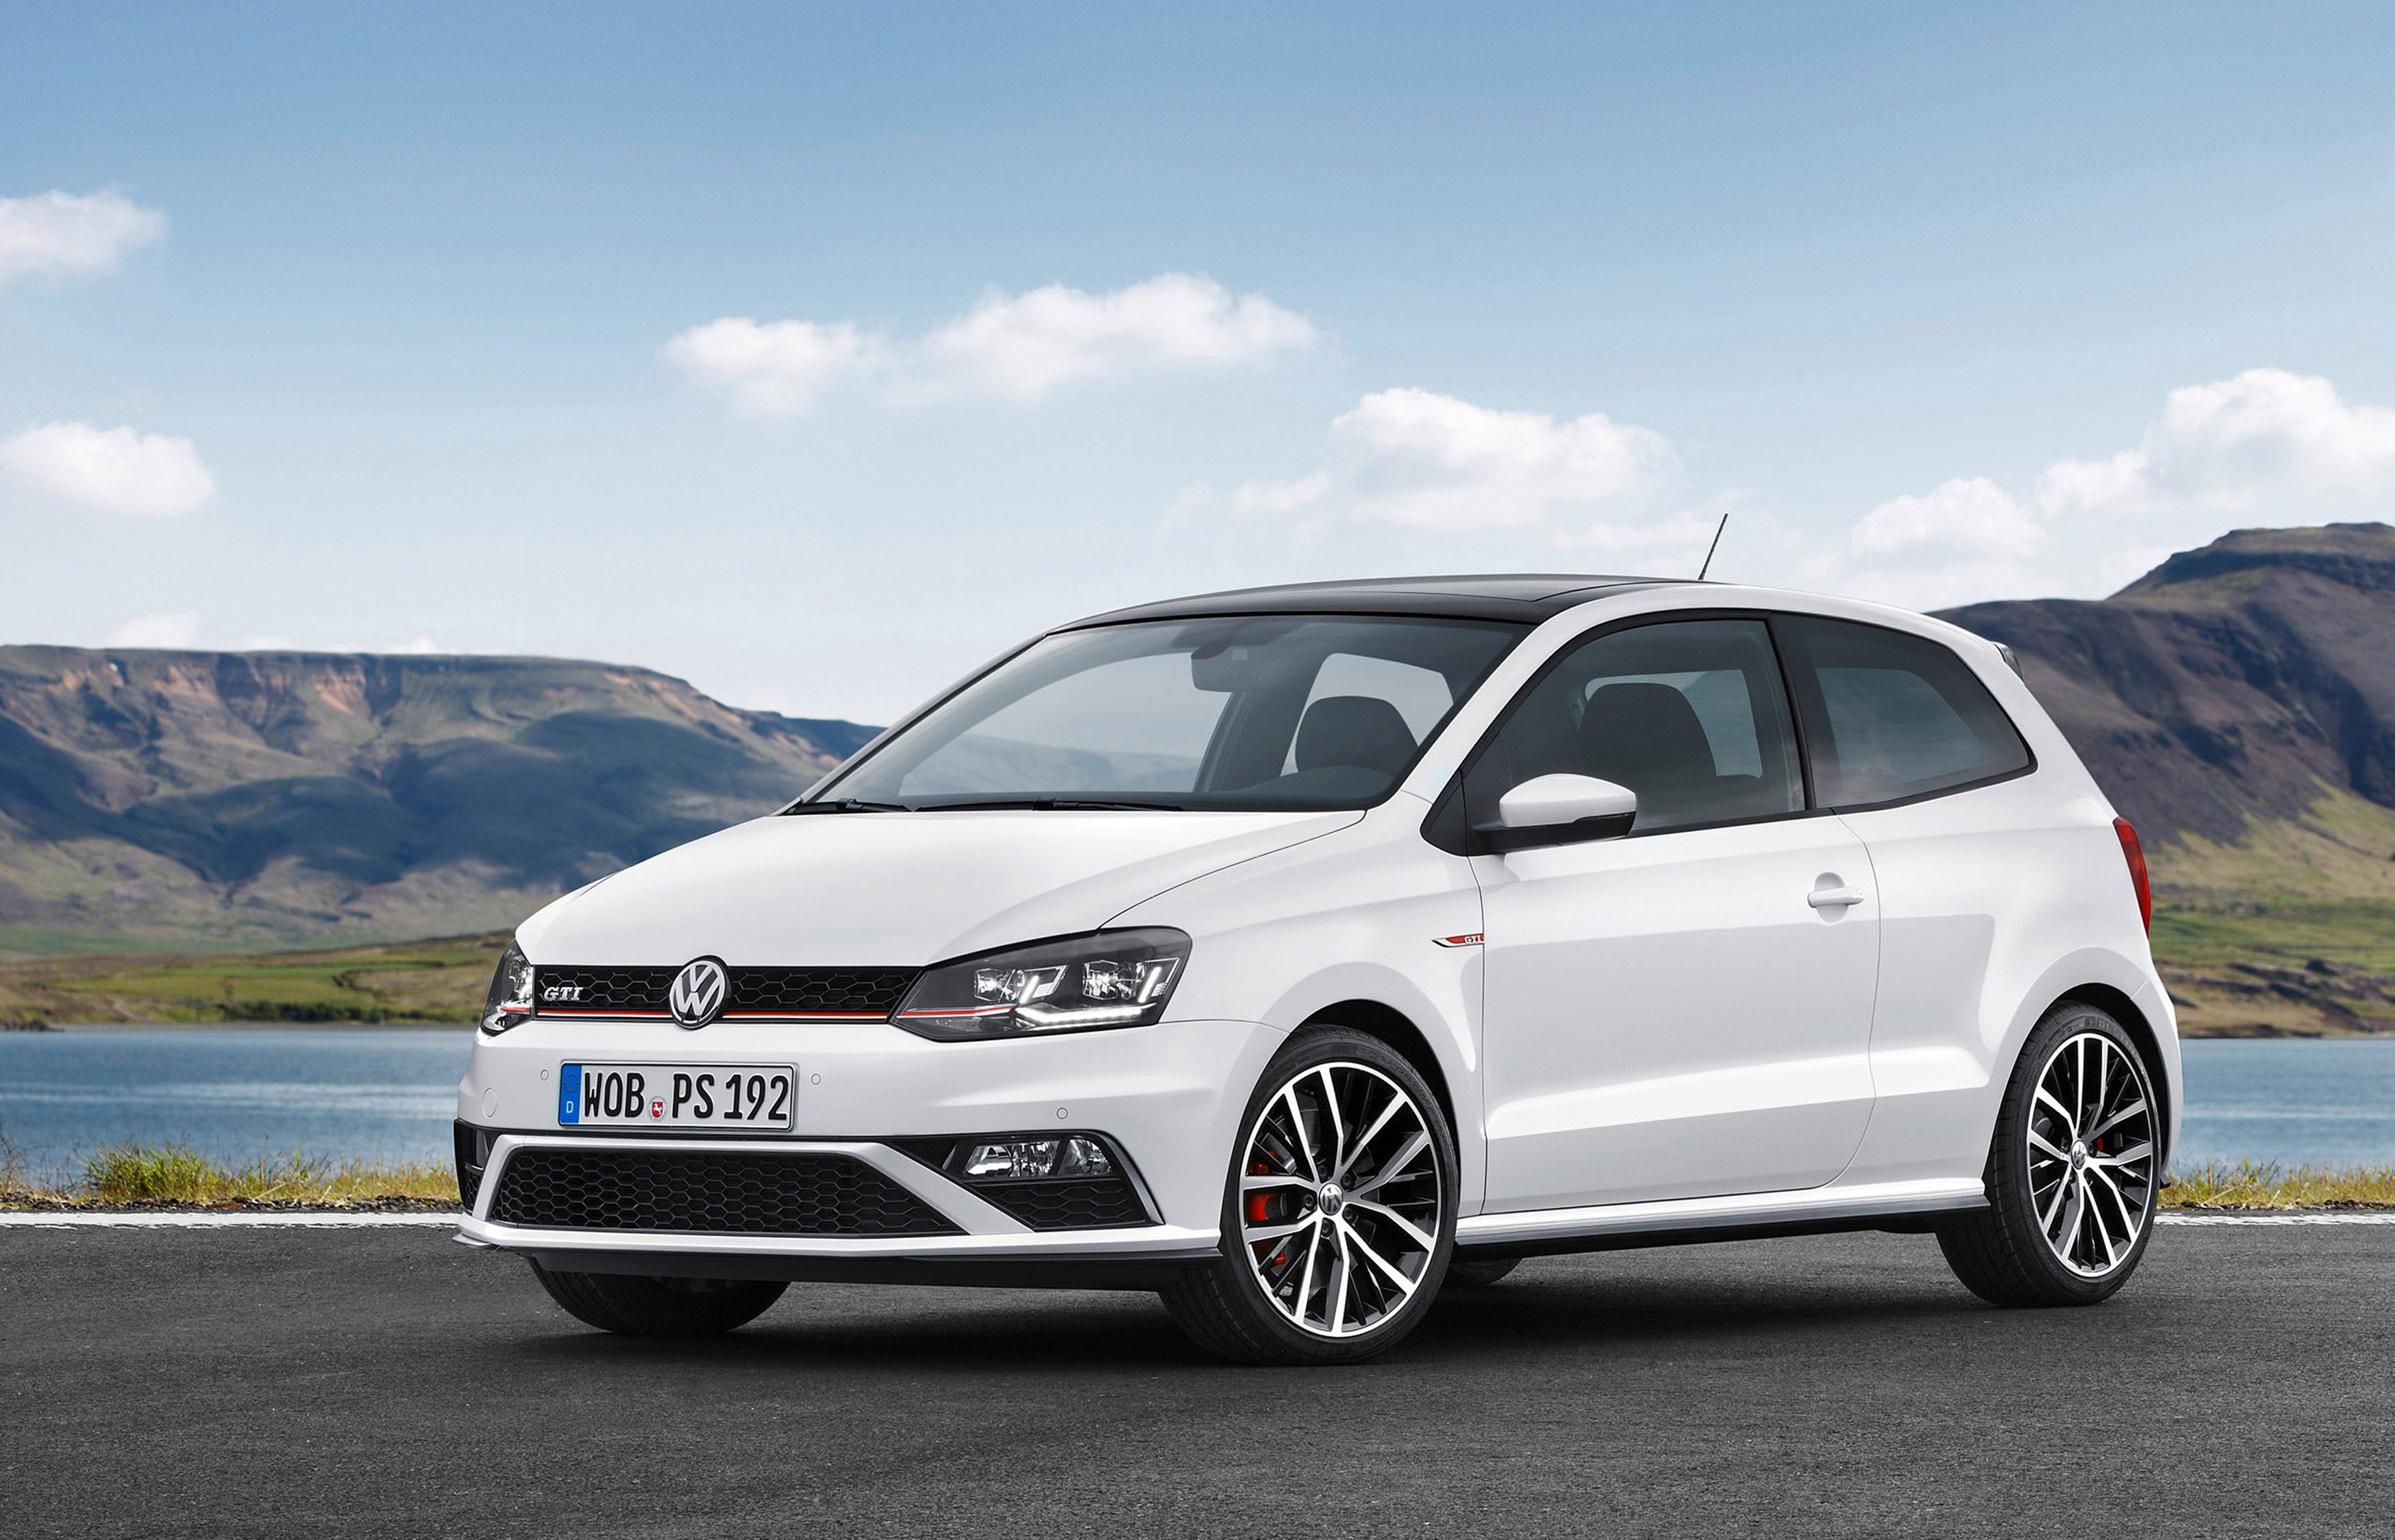 volkswagen polo wallpapers images photos pictures backgrounds. Black Bedroom Furniture Sets. Home Design Ideas